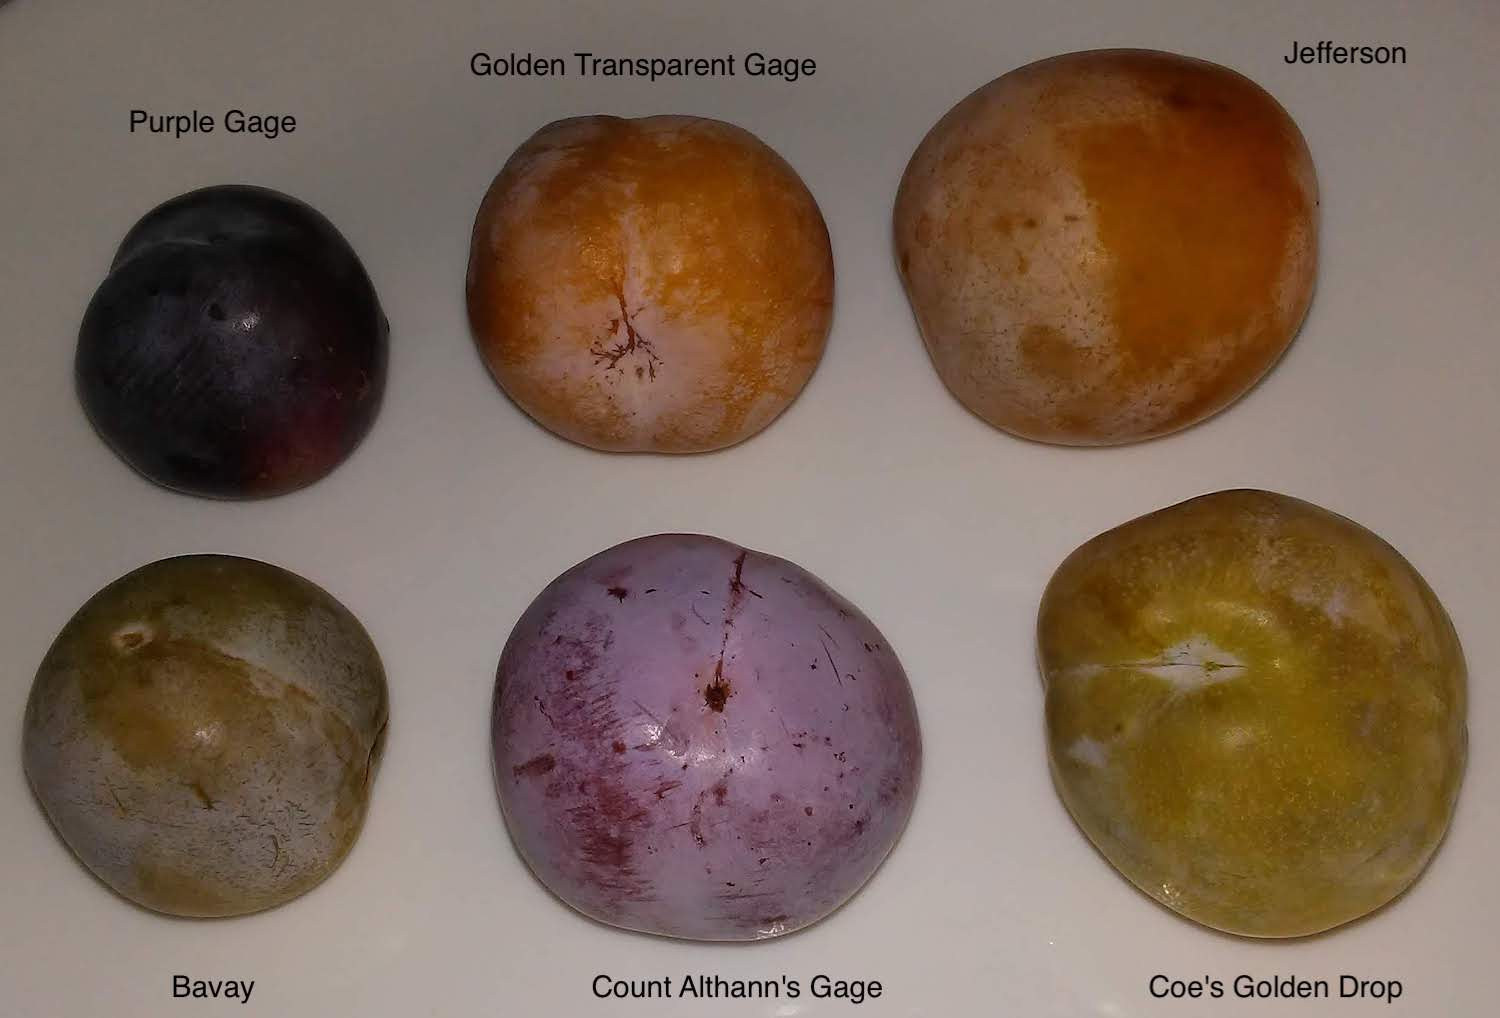 Plums_Gages_2019-08-10_photo-1